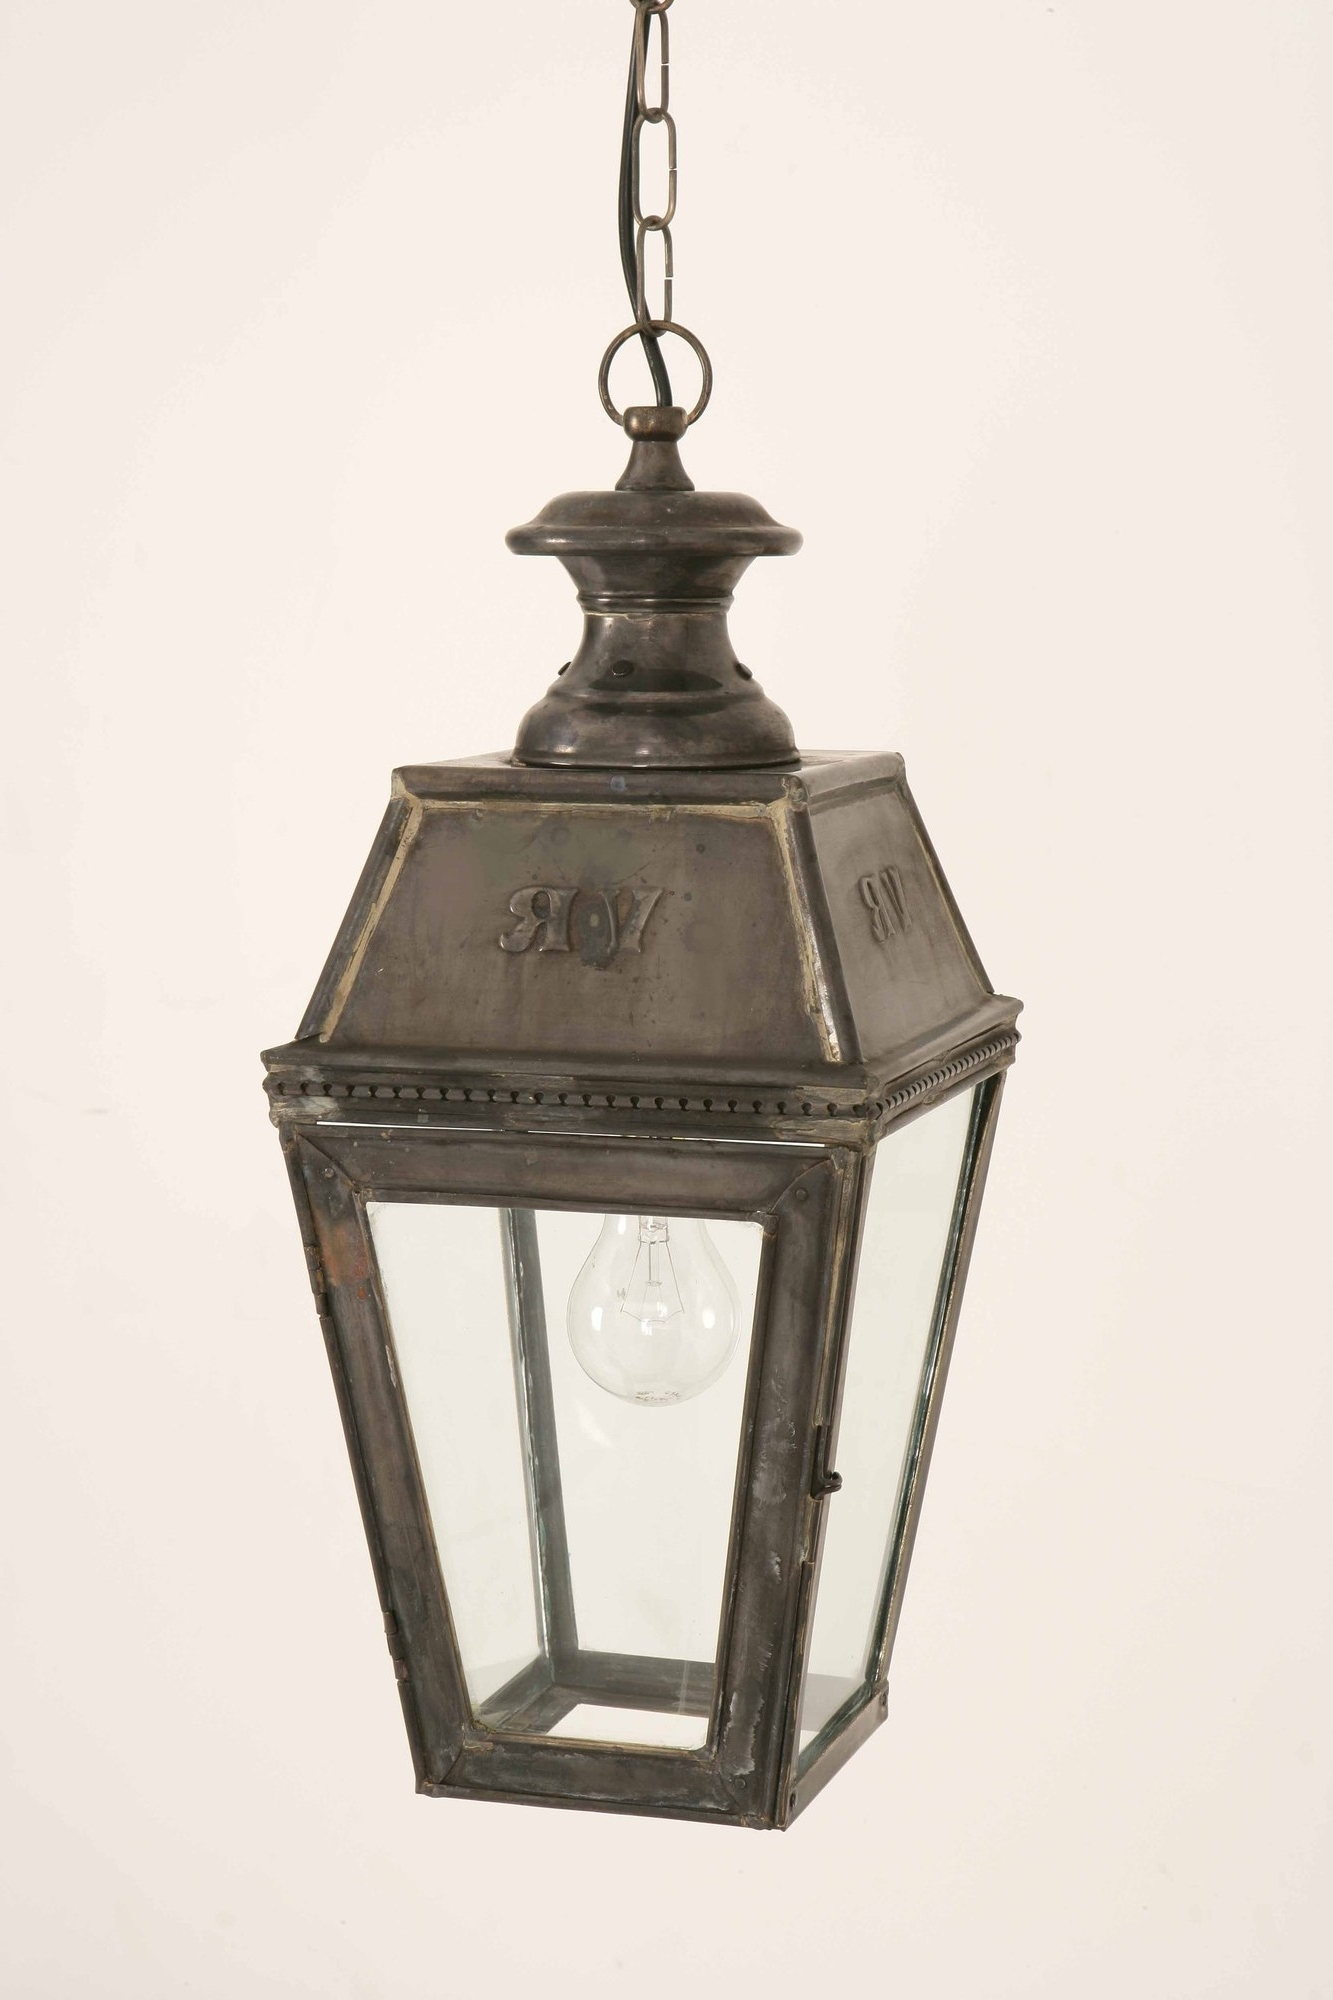 Kensington Pendant Pertaining To Most Up To Date Outdoor Porch Lanterns (Gallery 2 of 20)